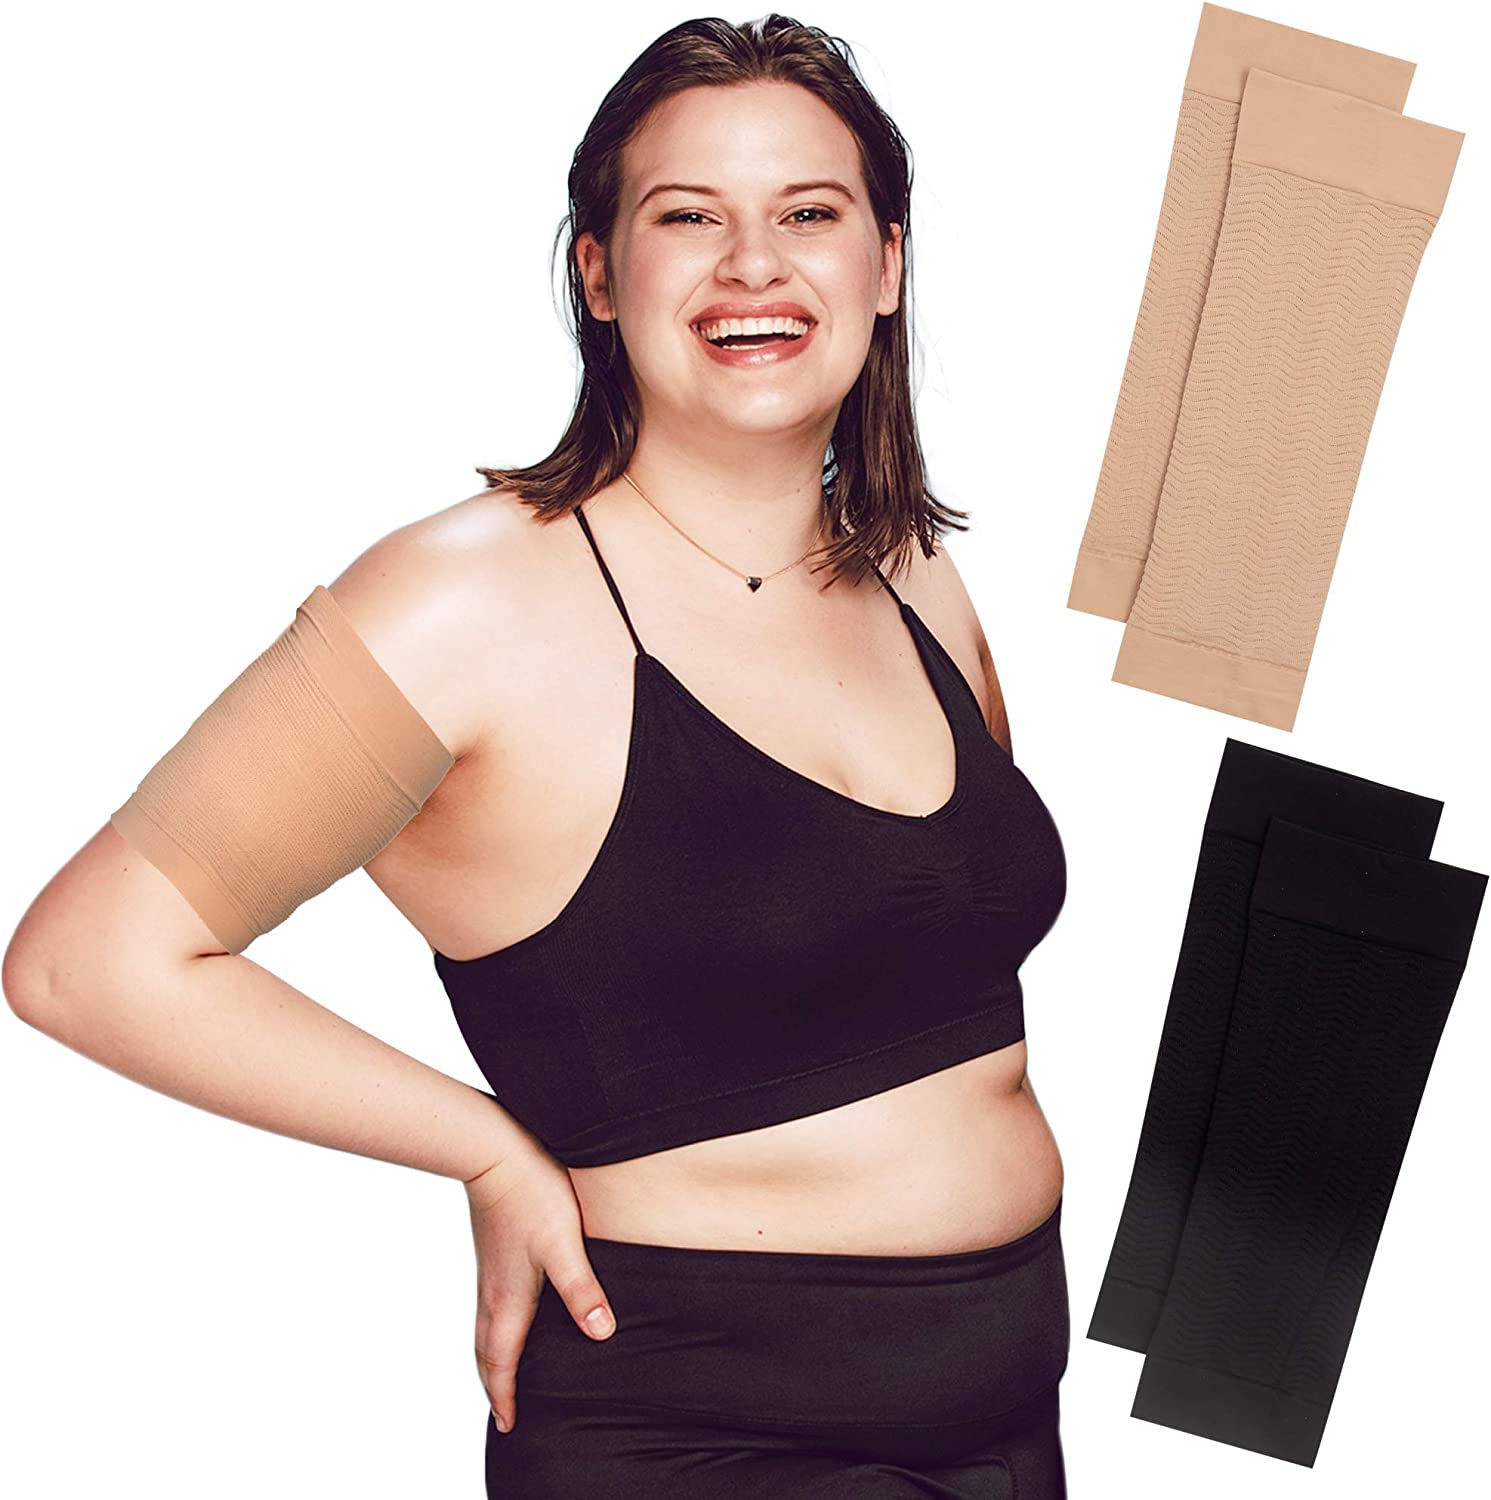 2 Pairs Black 2 Pairs Arm Shapers for Women Plus Size Slimming Arm Wraps for Flabby Arms Weight Loss